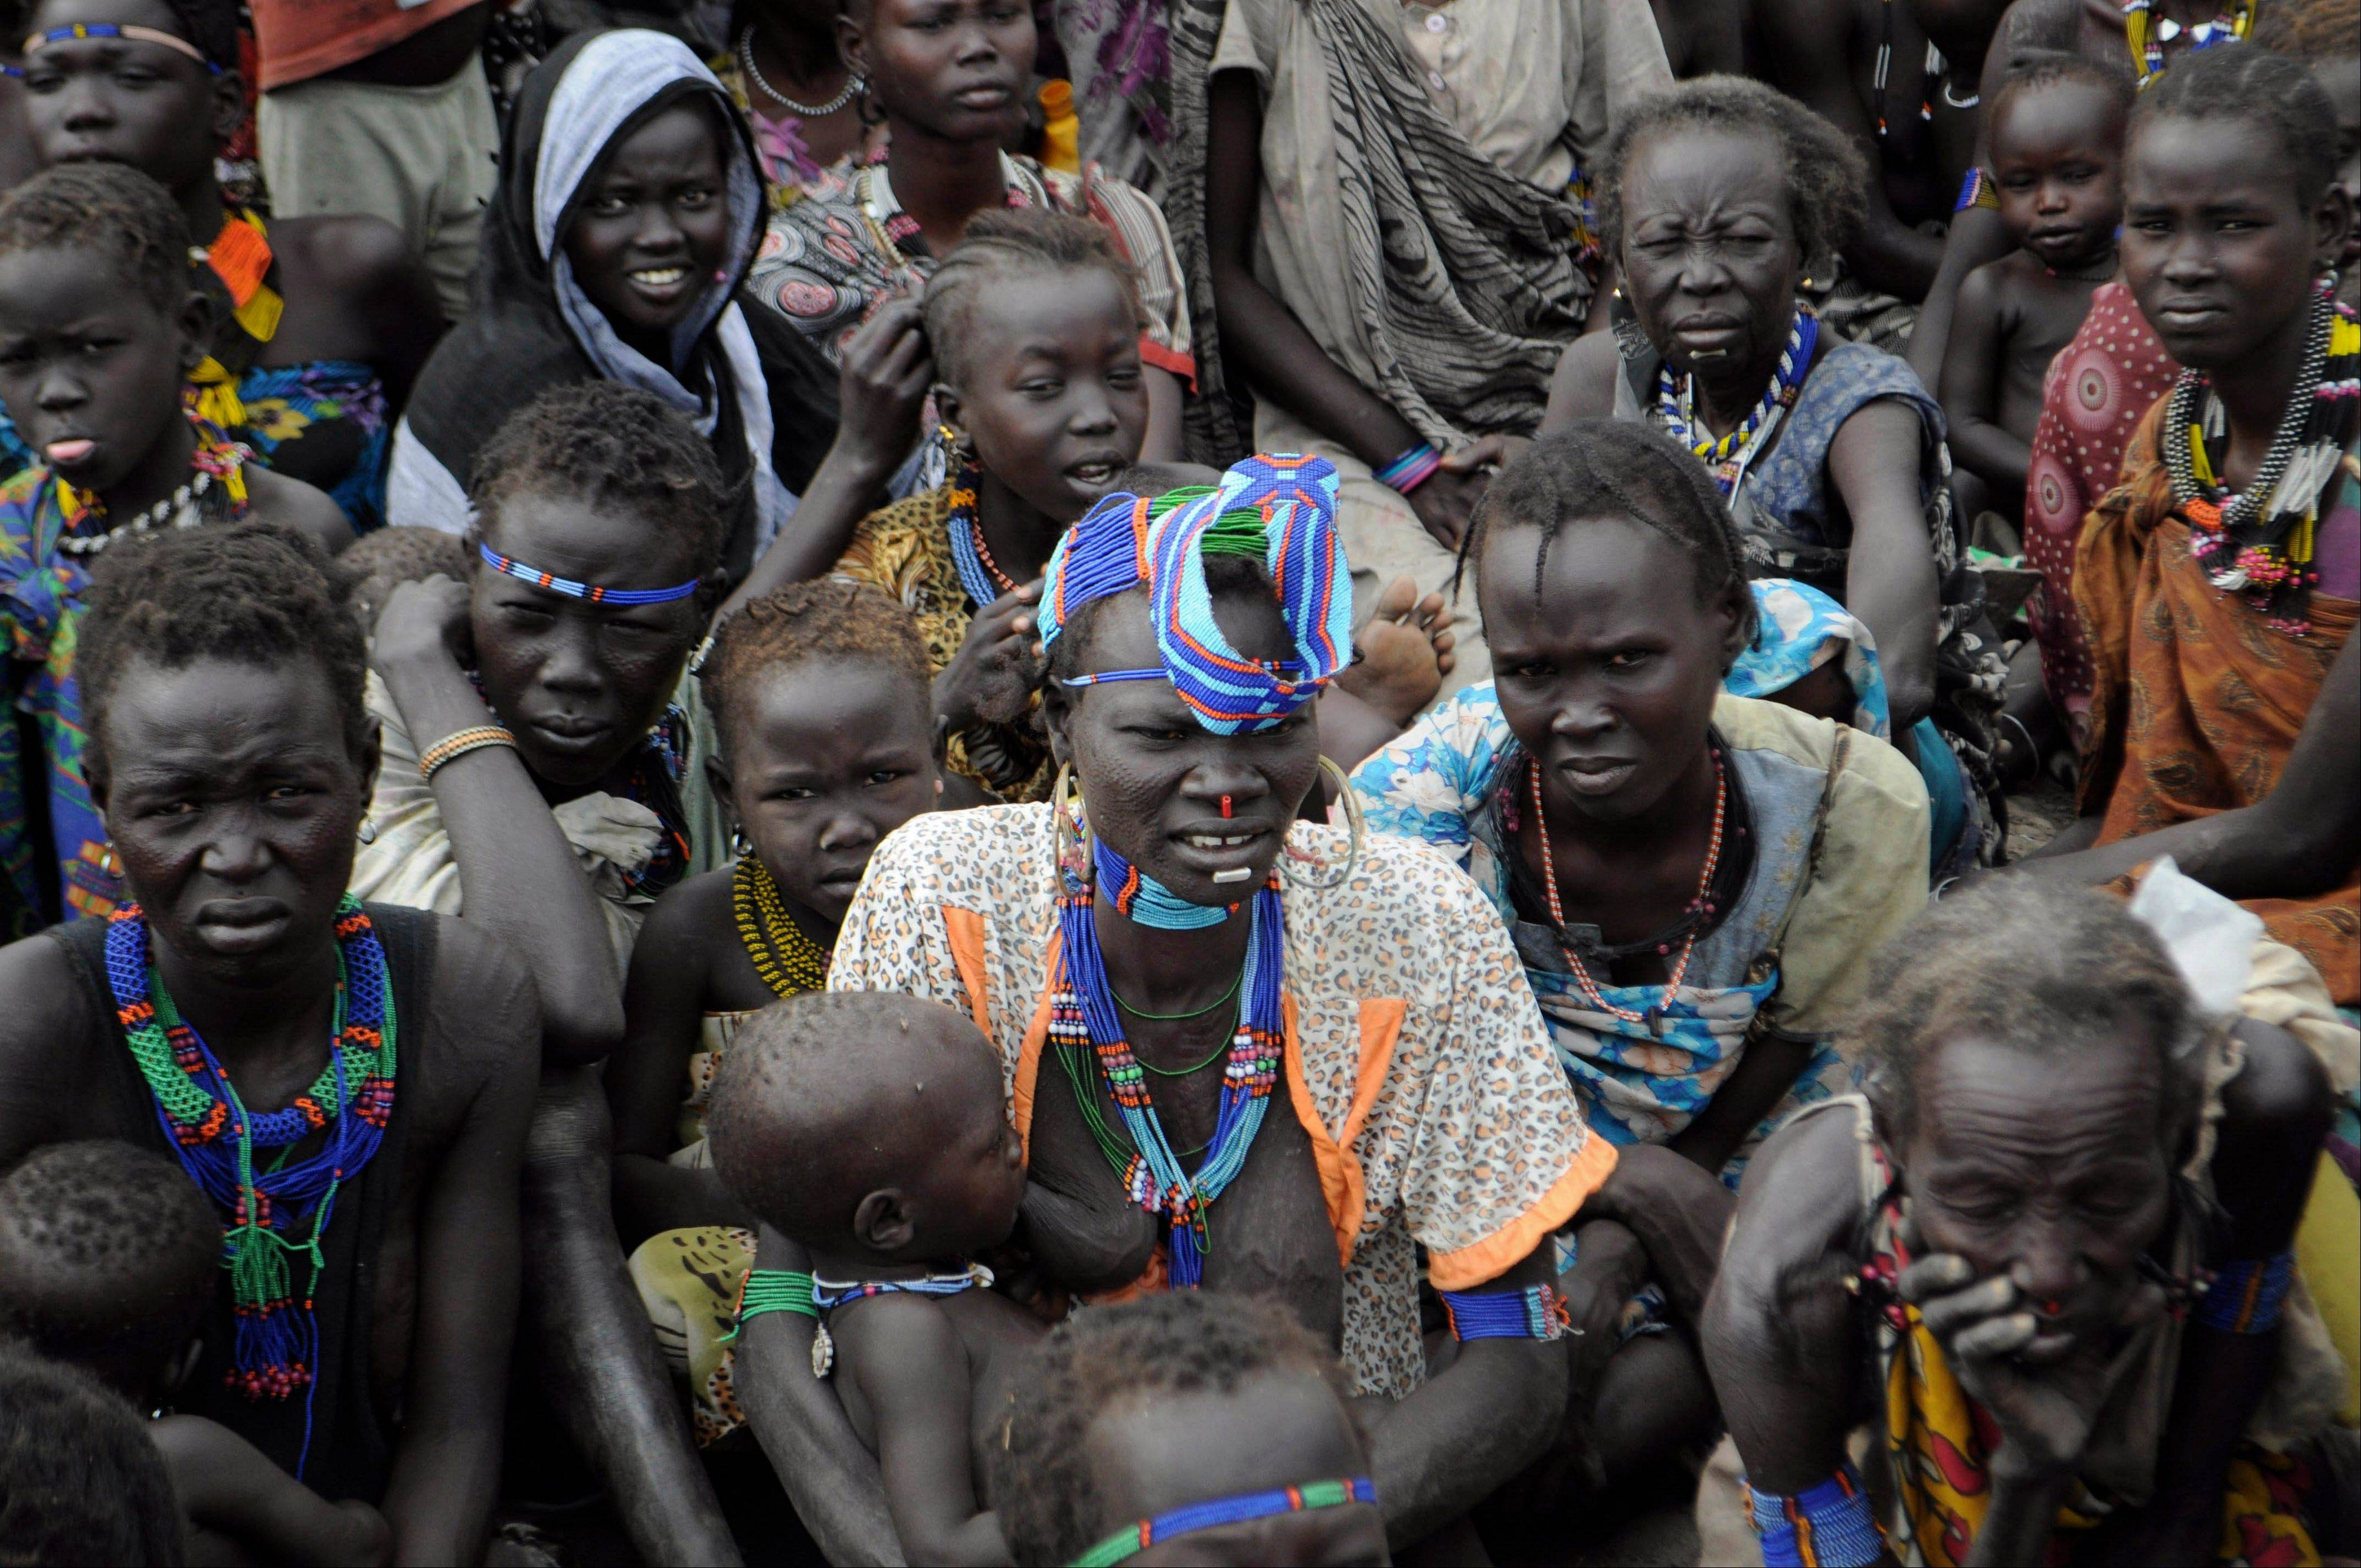 Victims of ethnic violence in Jonglei, state, South Sudan, wait in line at the World Food Program distribution center in Pibor to receive emergency food rations.